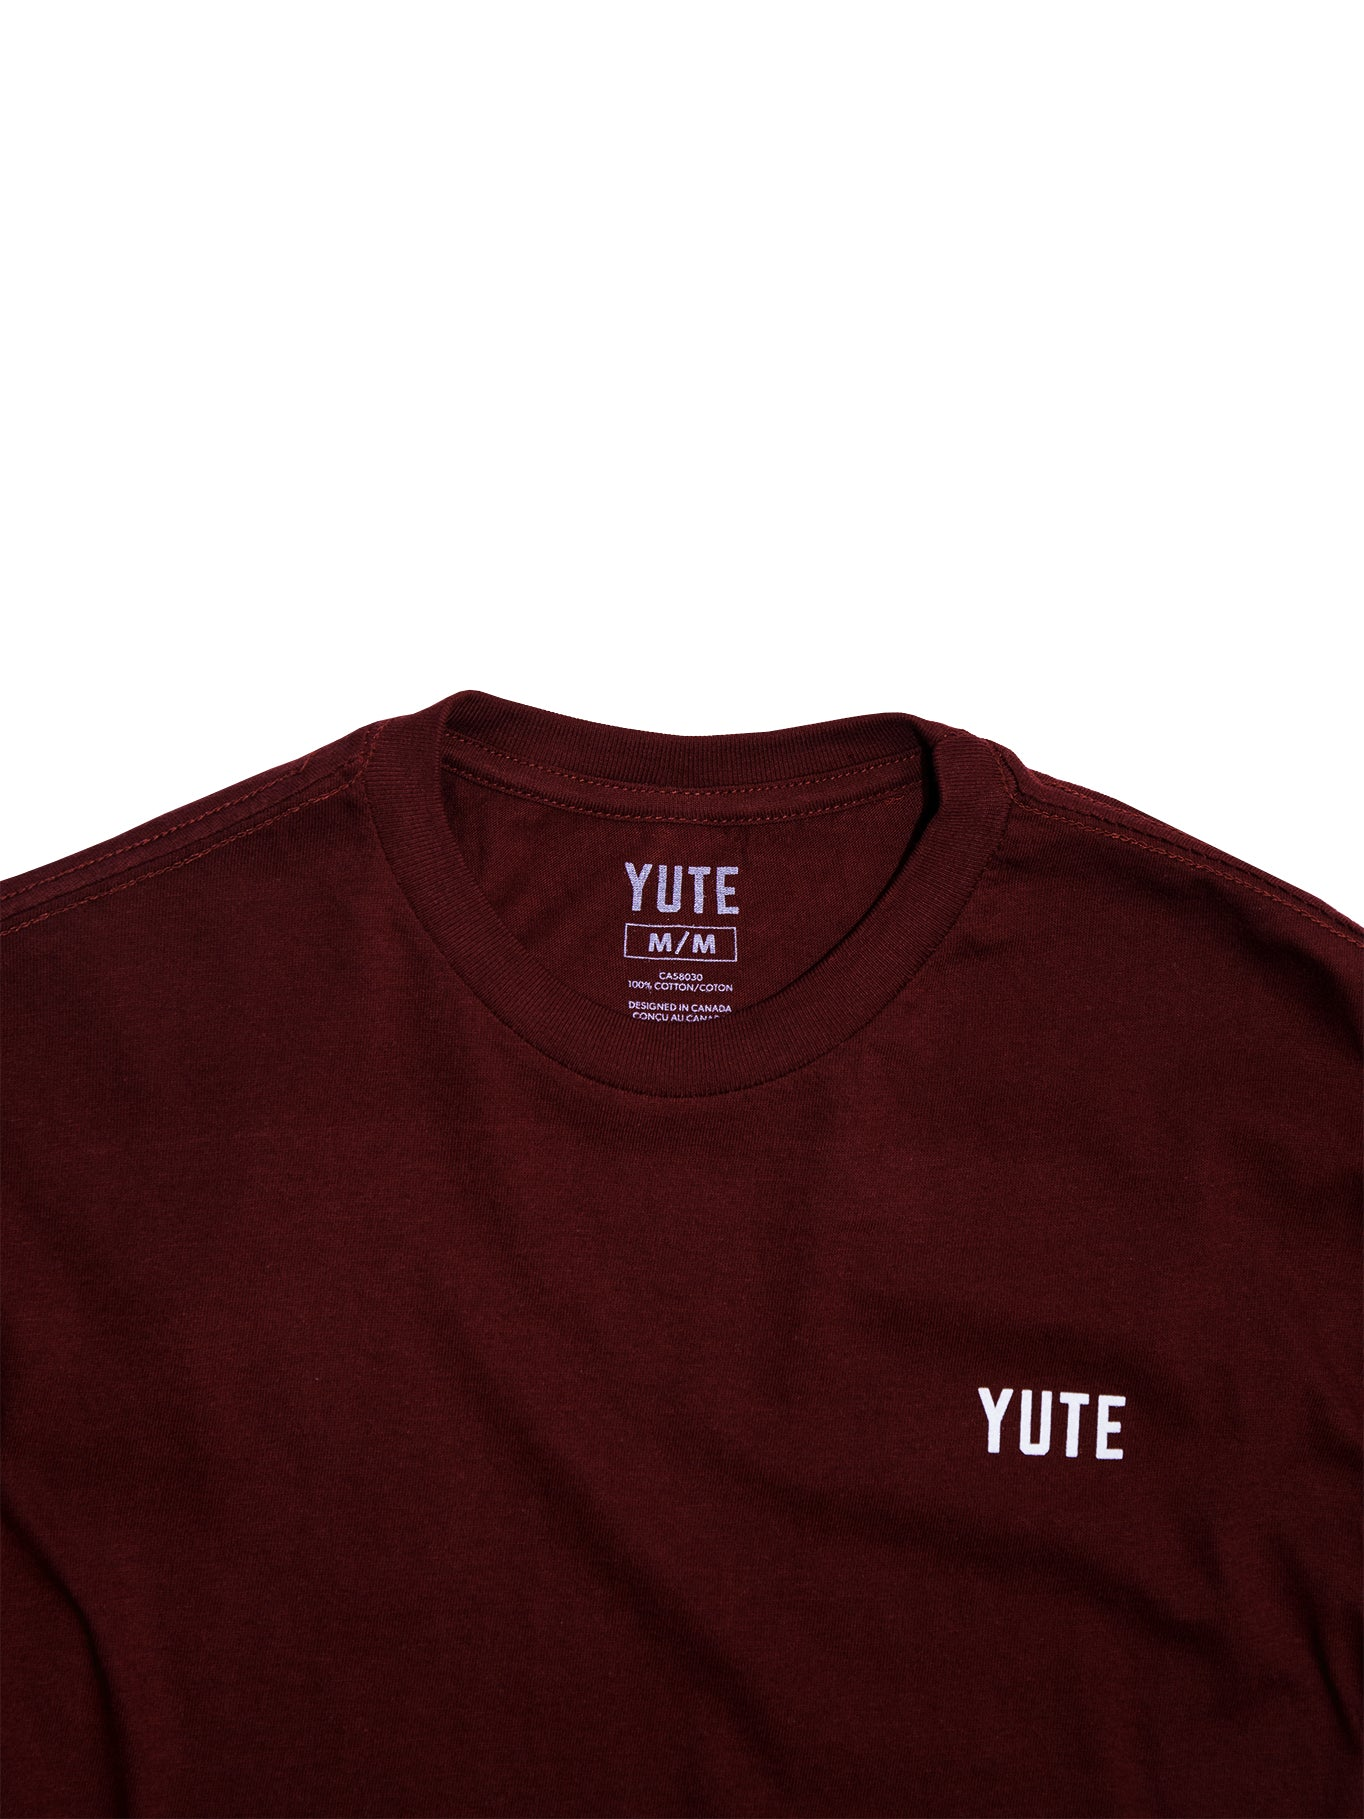 Be A Good Yute — Burgundy